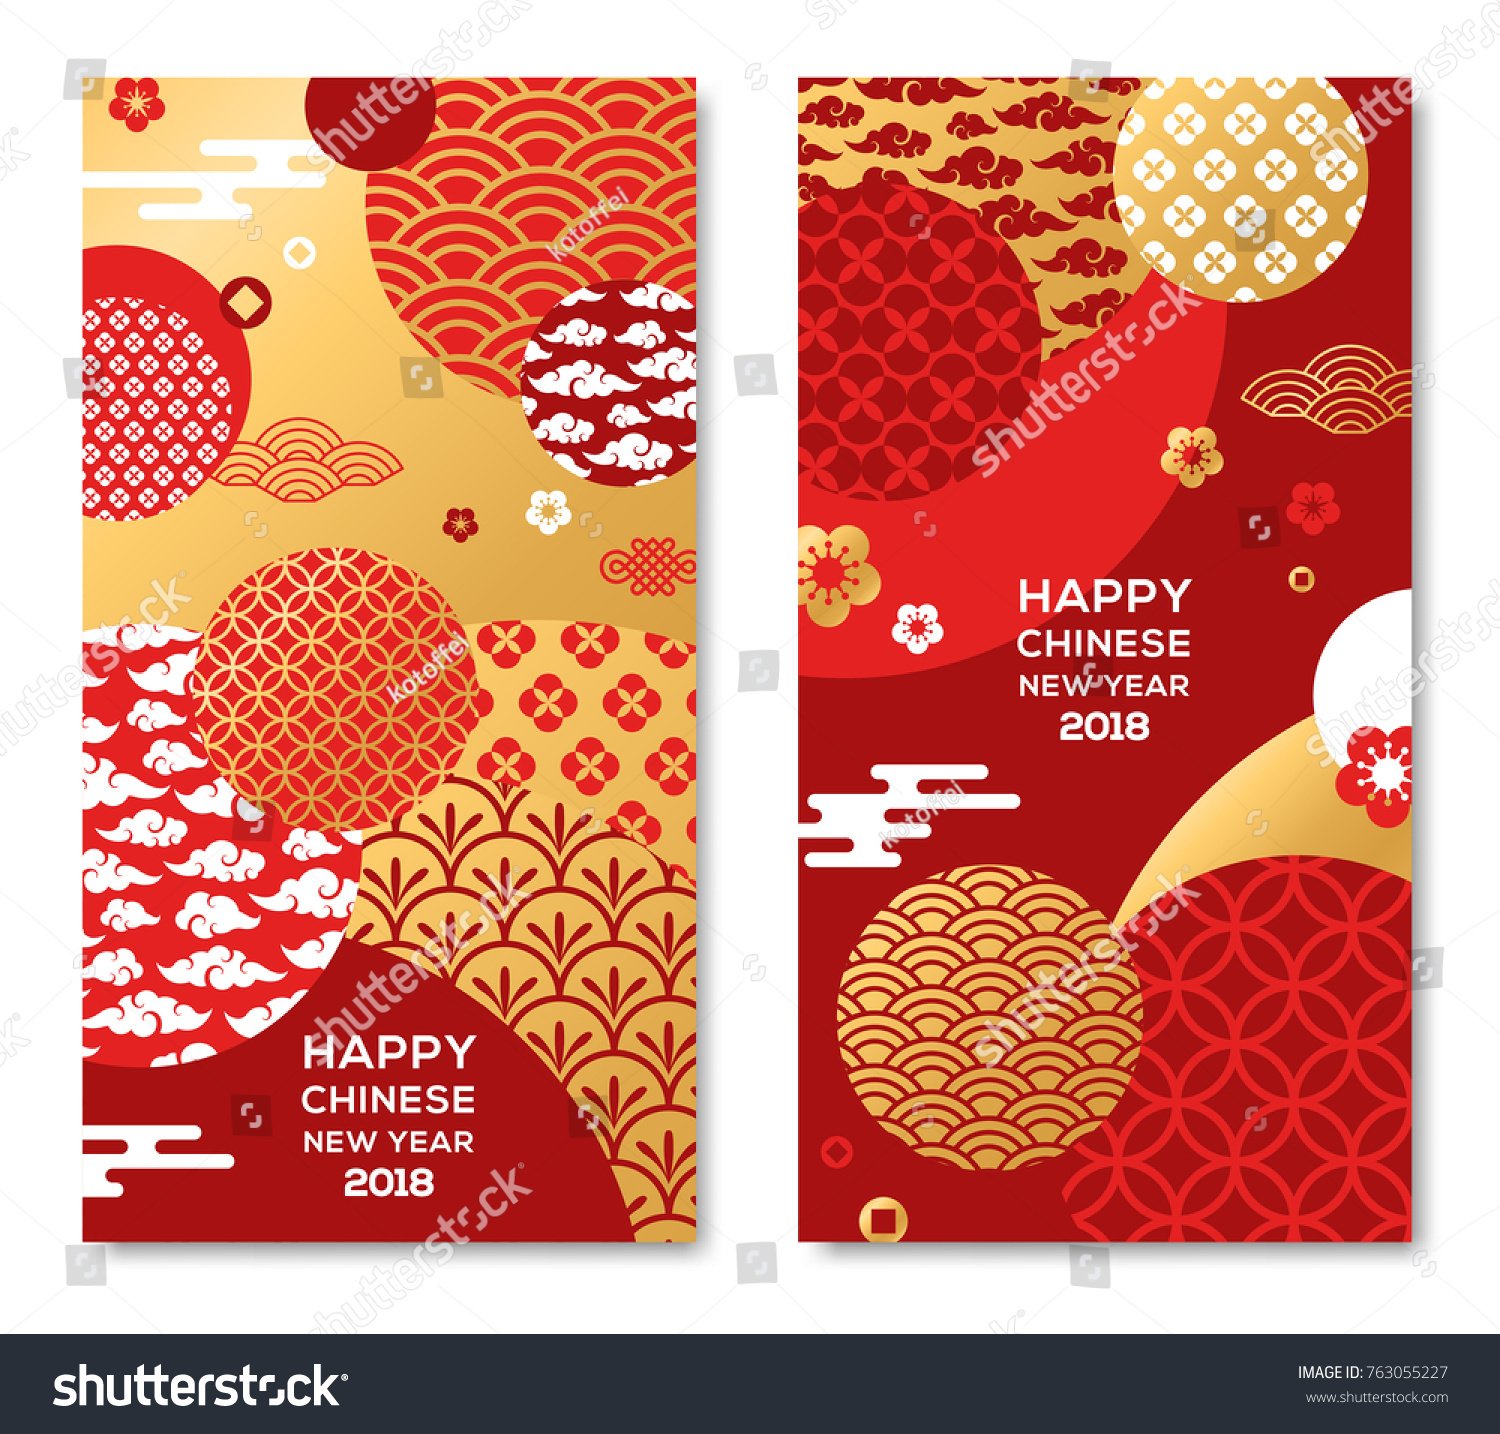 vertical banners set with 2018 chinese new year elements vector illustration asian clouds and